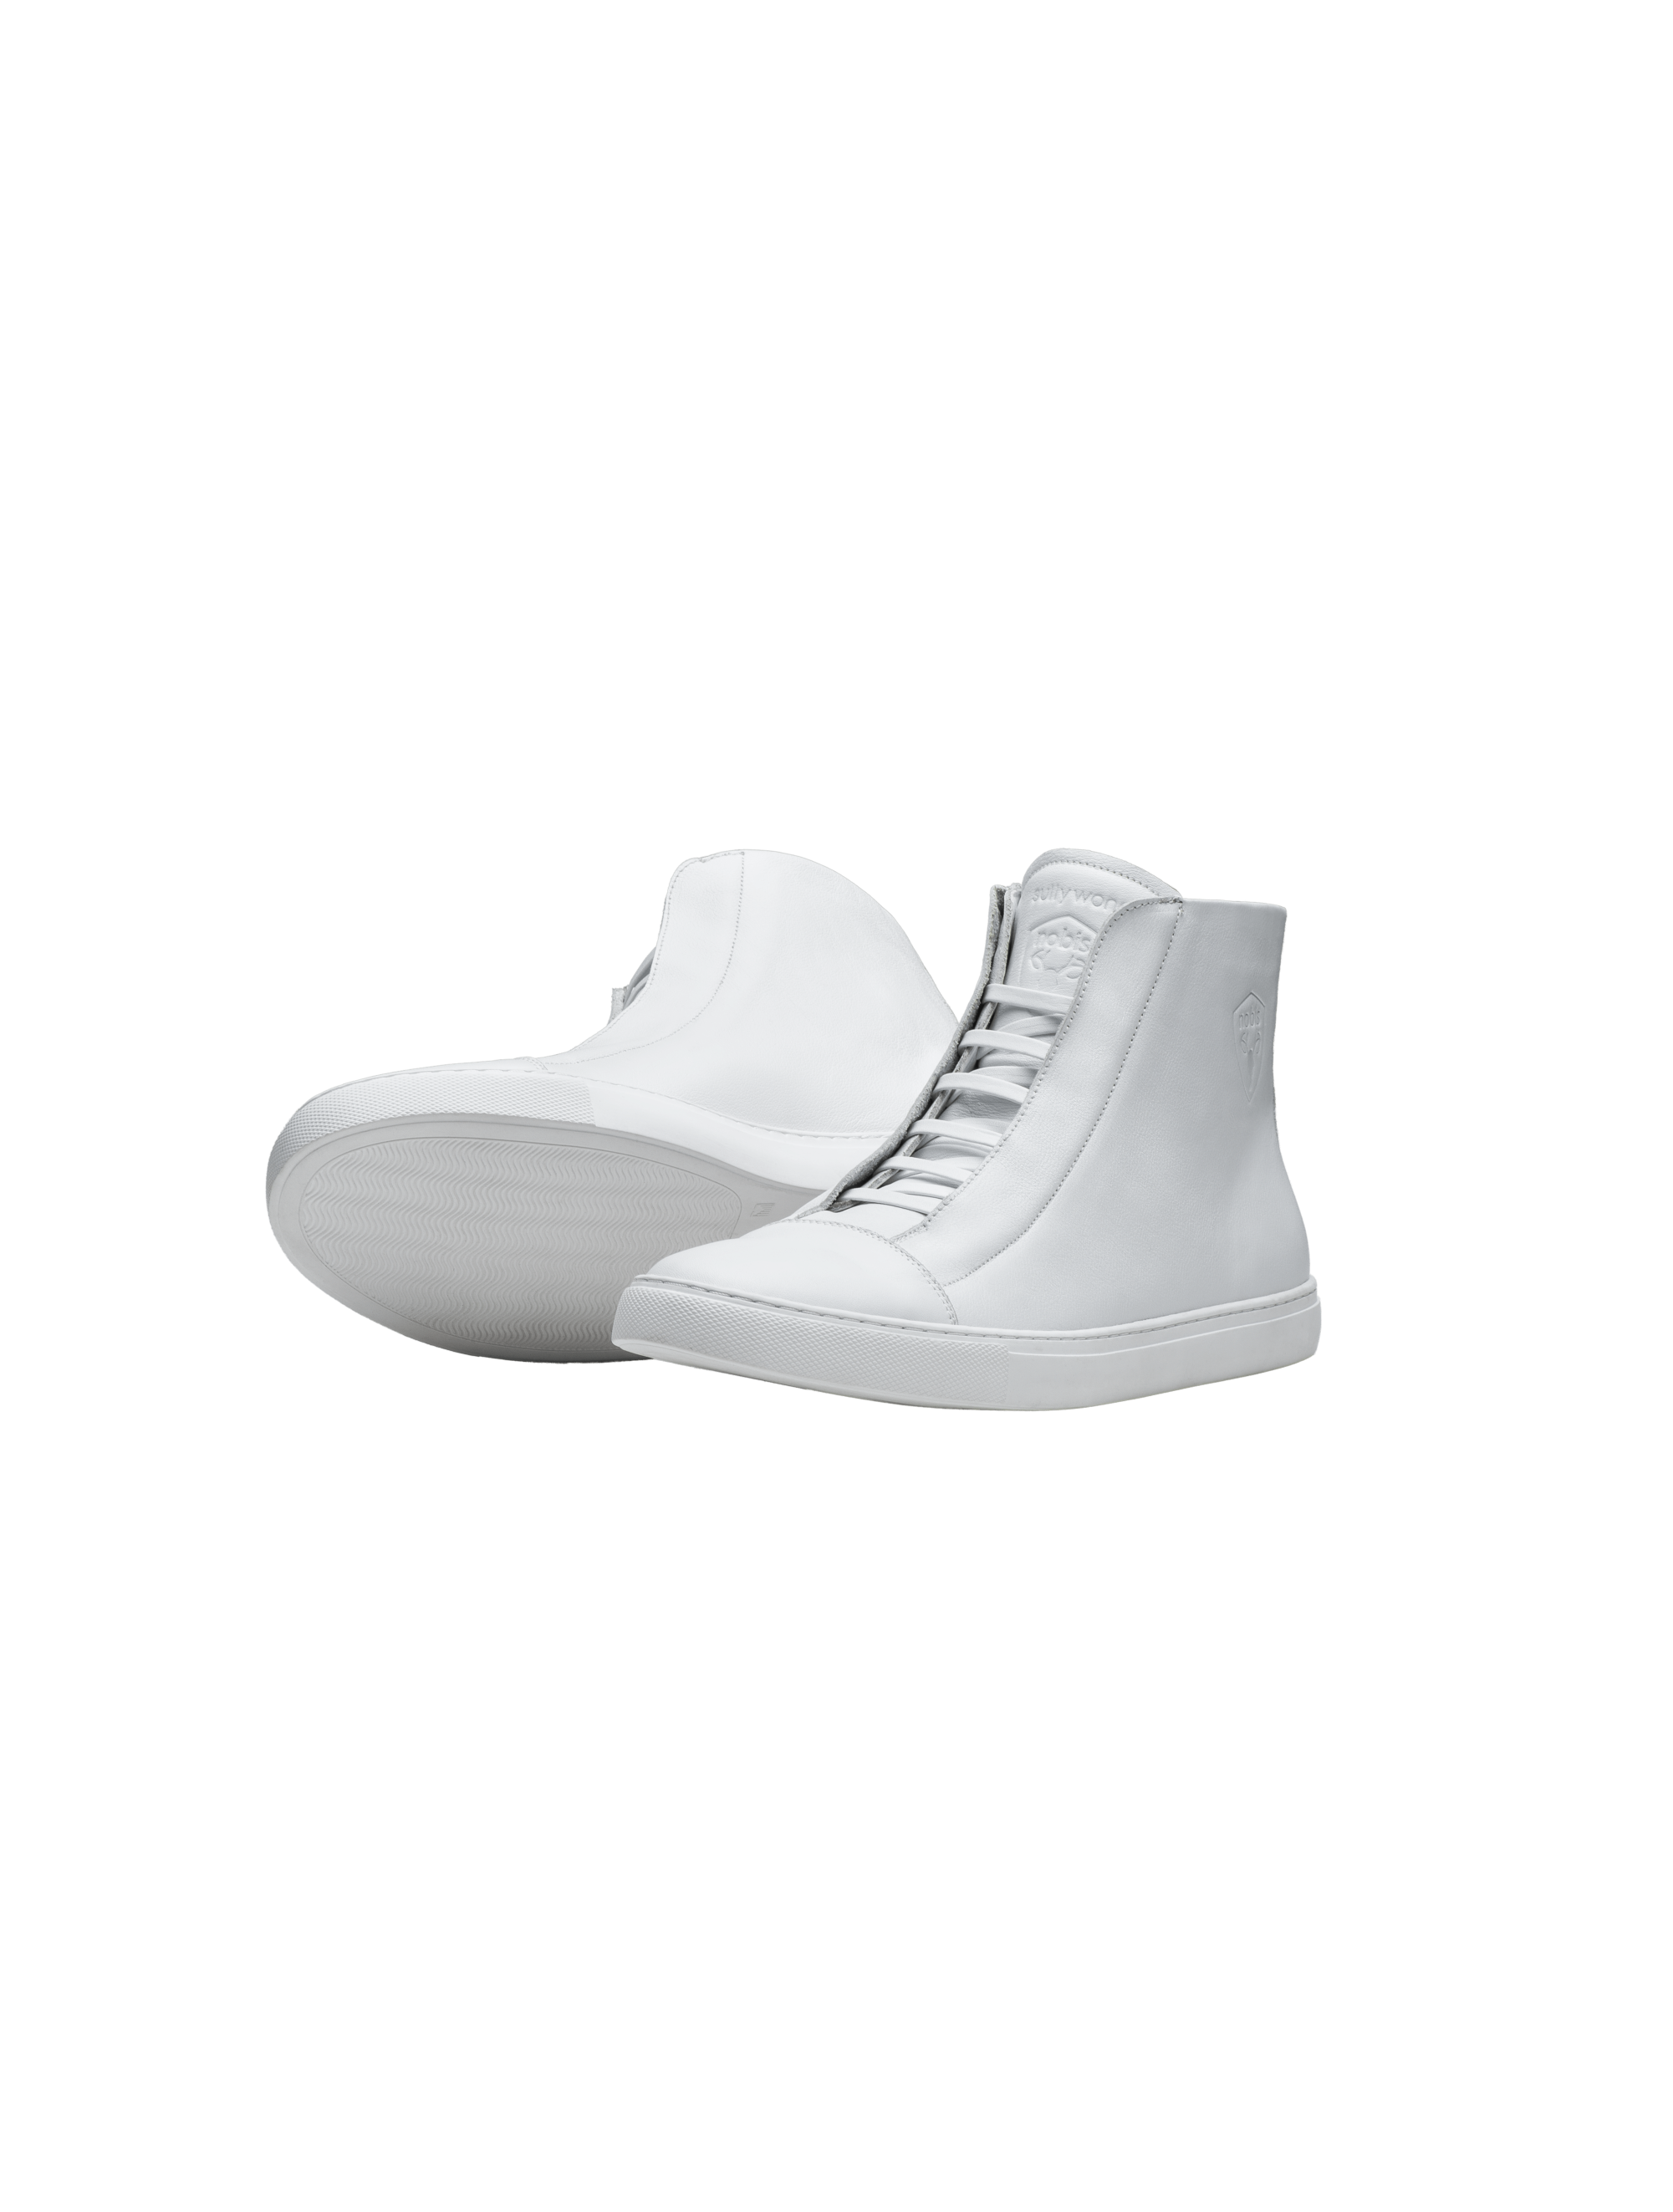 Unisex high top sneaker with Nobis crest embossed on the right side of the shoe in White | color